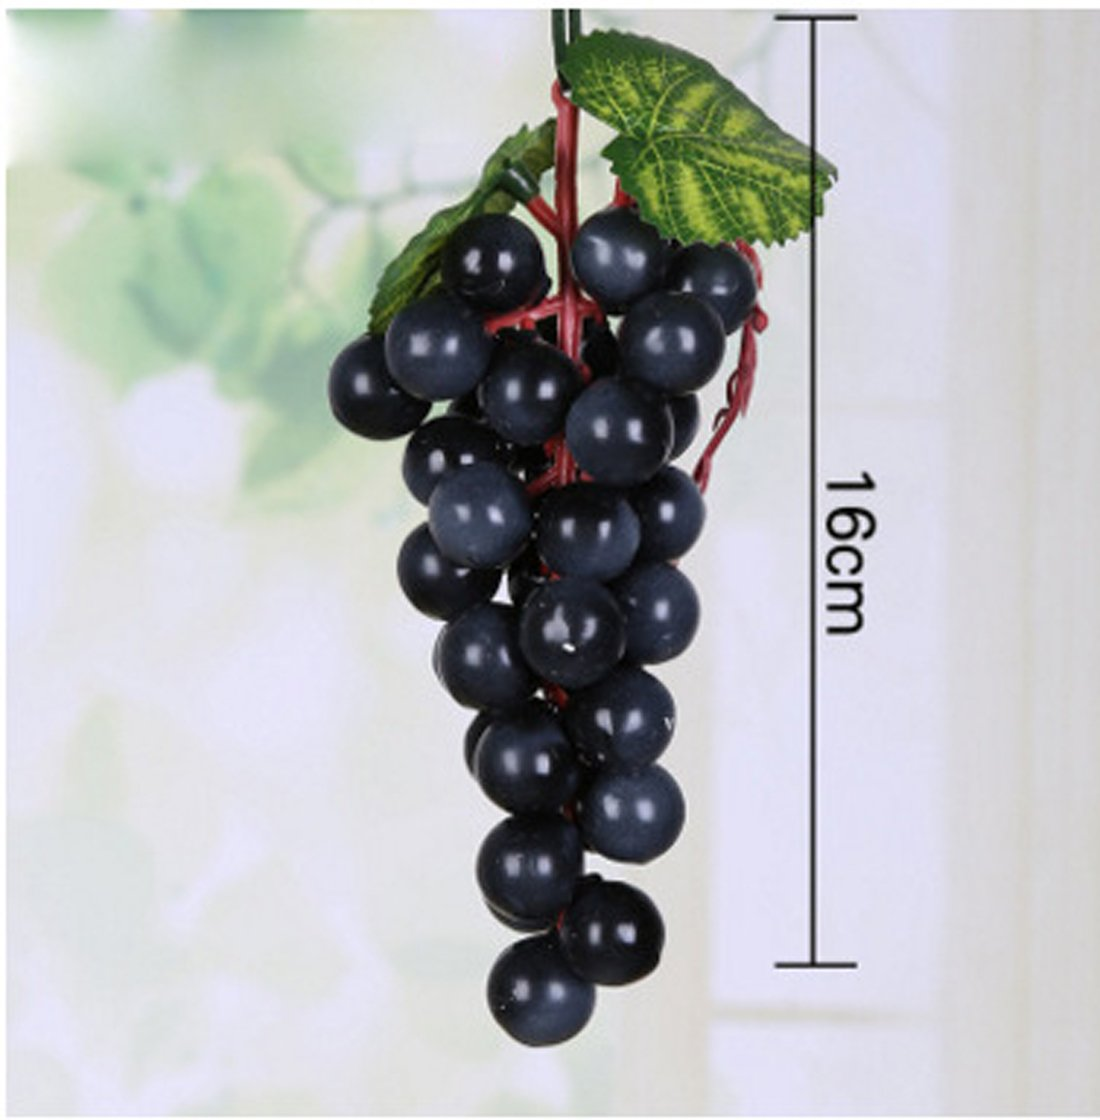 HBOS Imitation Grapes Fake Raisins Large Grape Clusters with Frost Artificial Fruit Shooting Props Home Decoration,4PCs